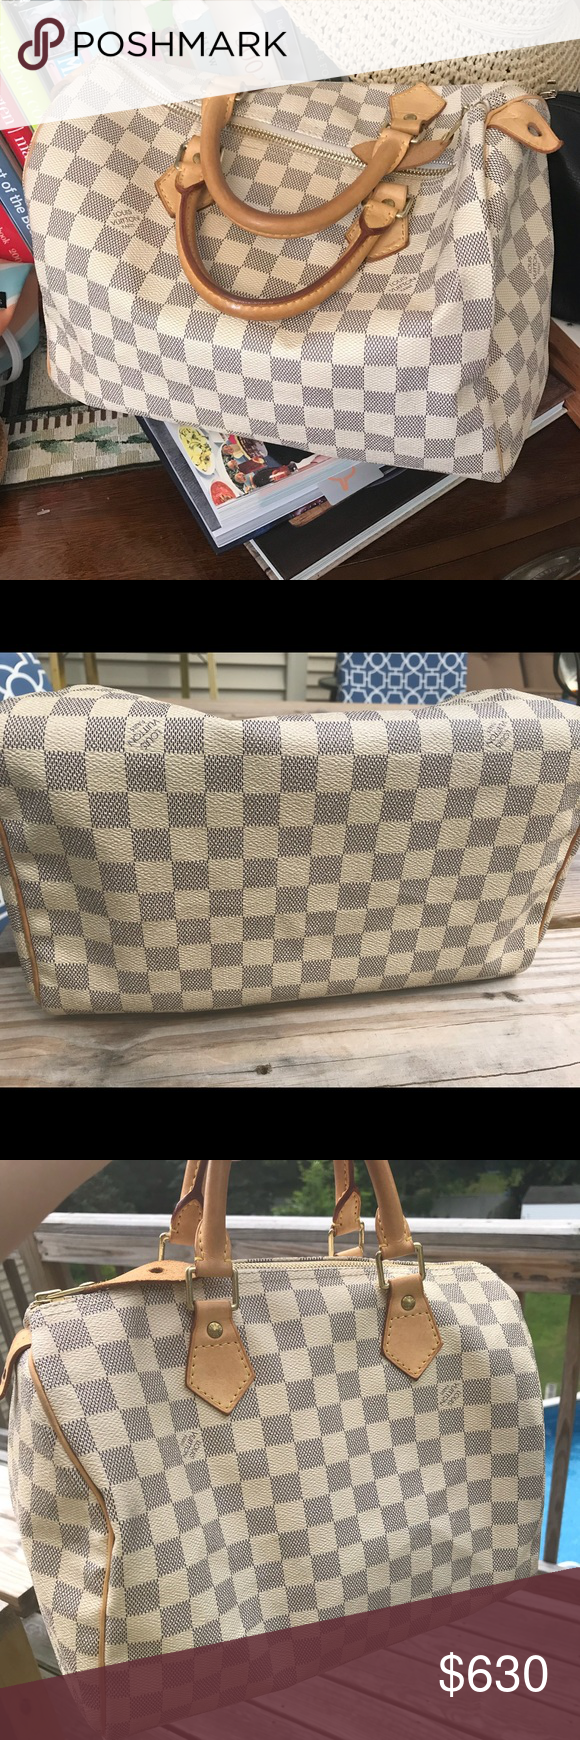 0edab7cf2098 Spotted while shopping on Poshmark  AUTHENTIC Louis Vuitton Damier Azur  Speedy 30!  poshmark  fashion  shopping  style  Louis Vuitton  Handbags